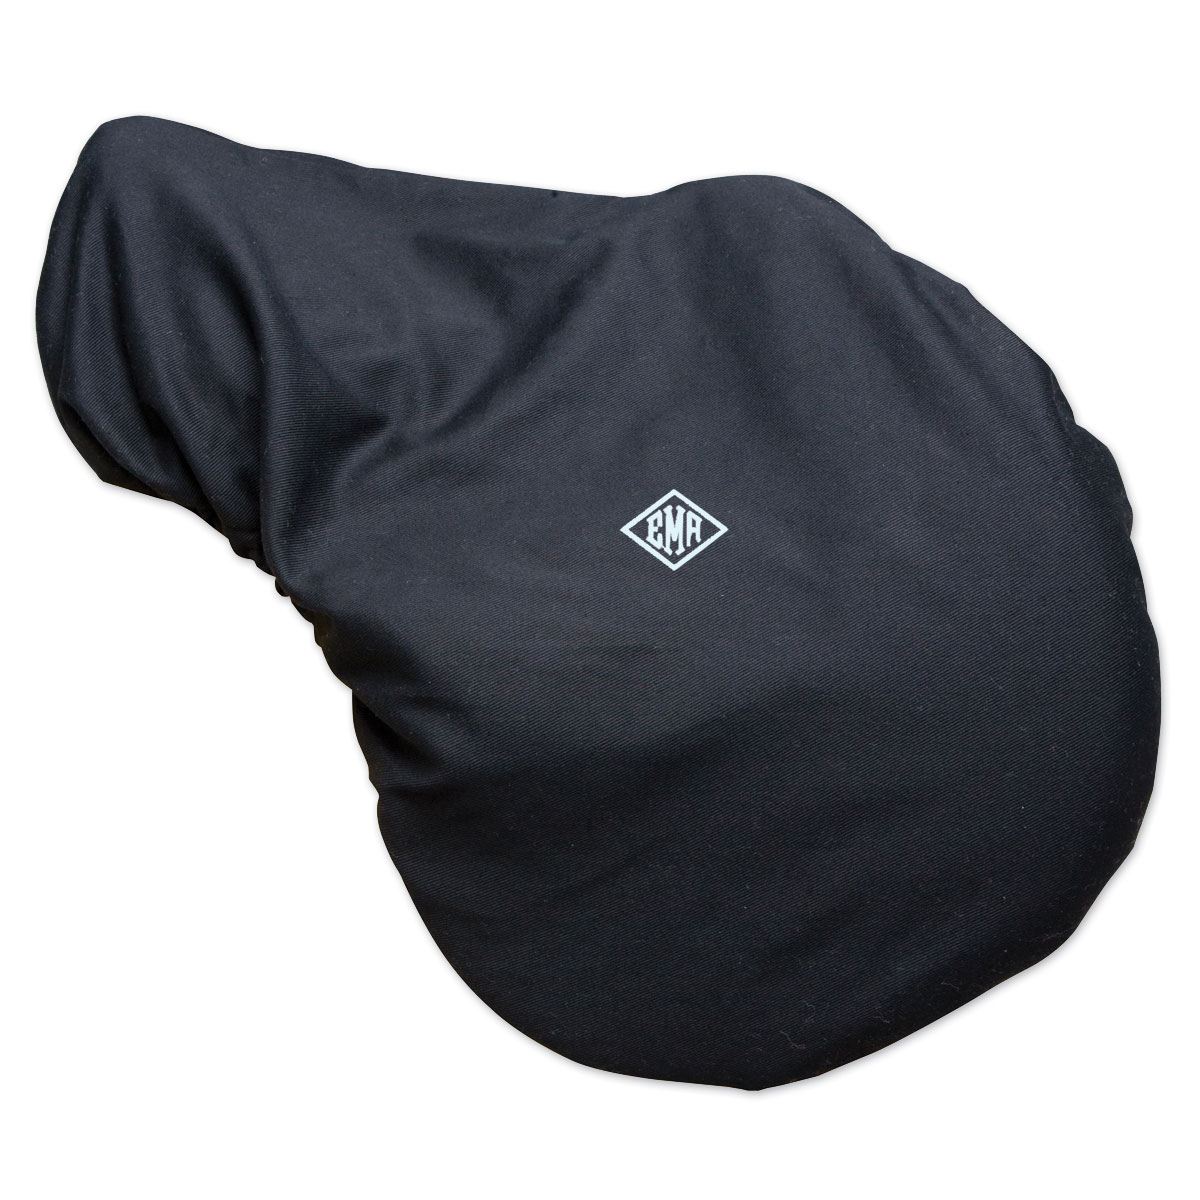 Q/&A SUPPLY Western Saddle Cover//Western Saddle Cover with Fenders and Tote in Grey